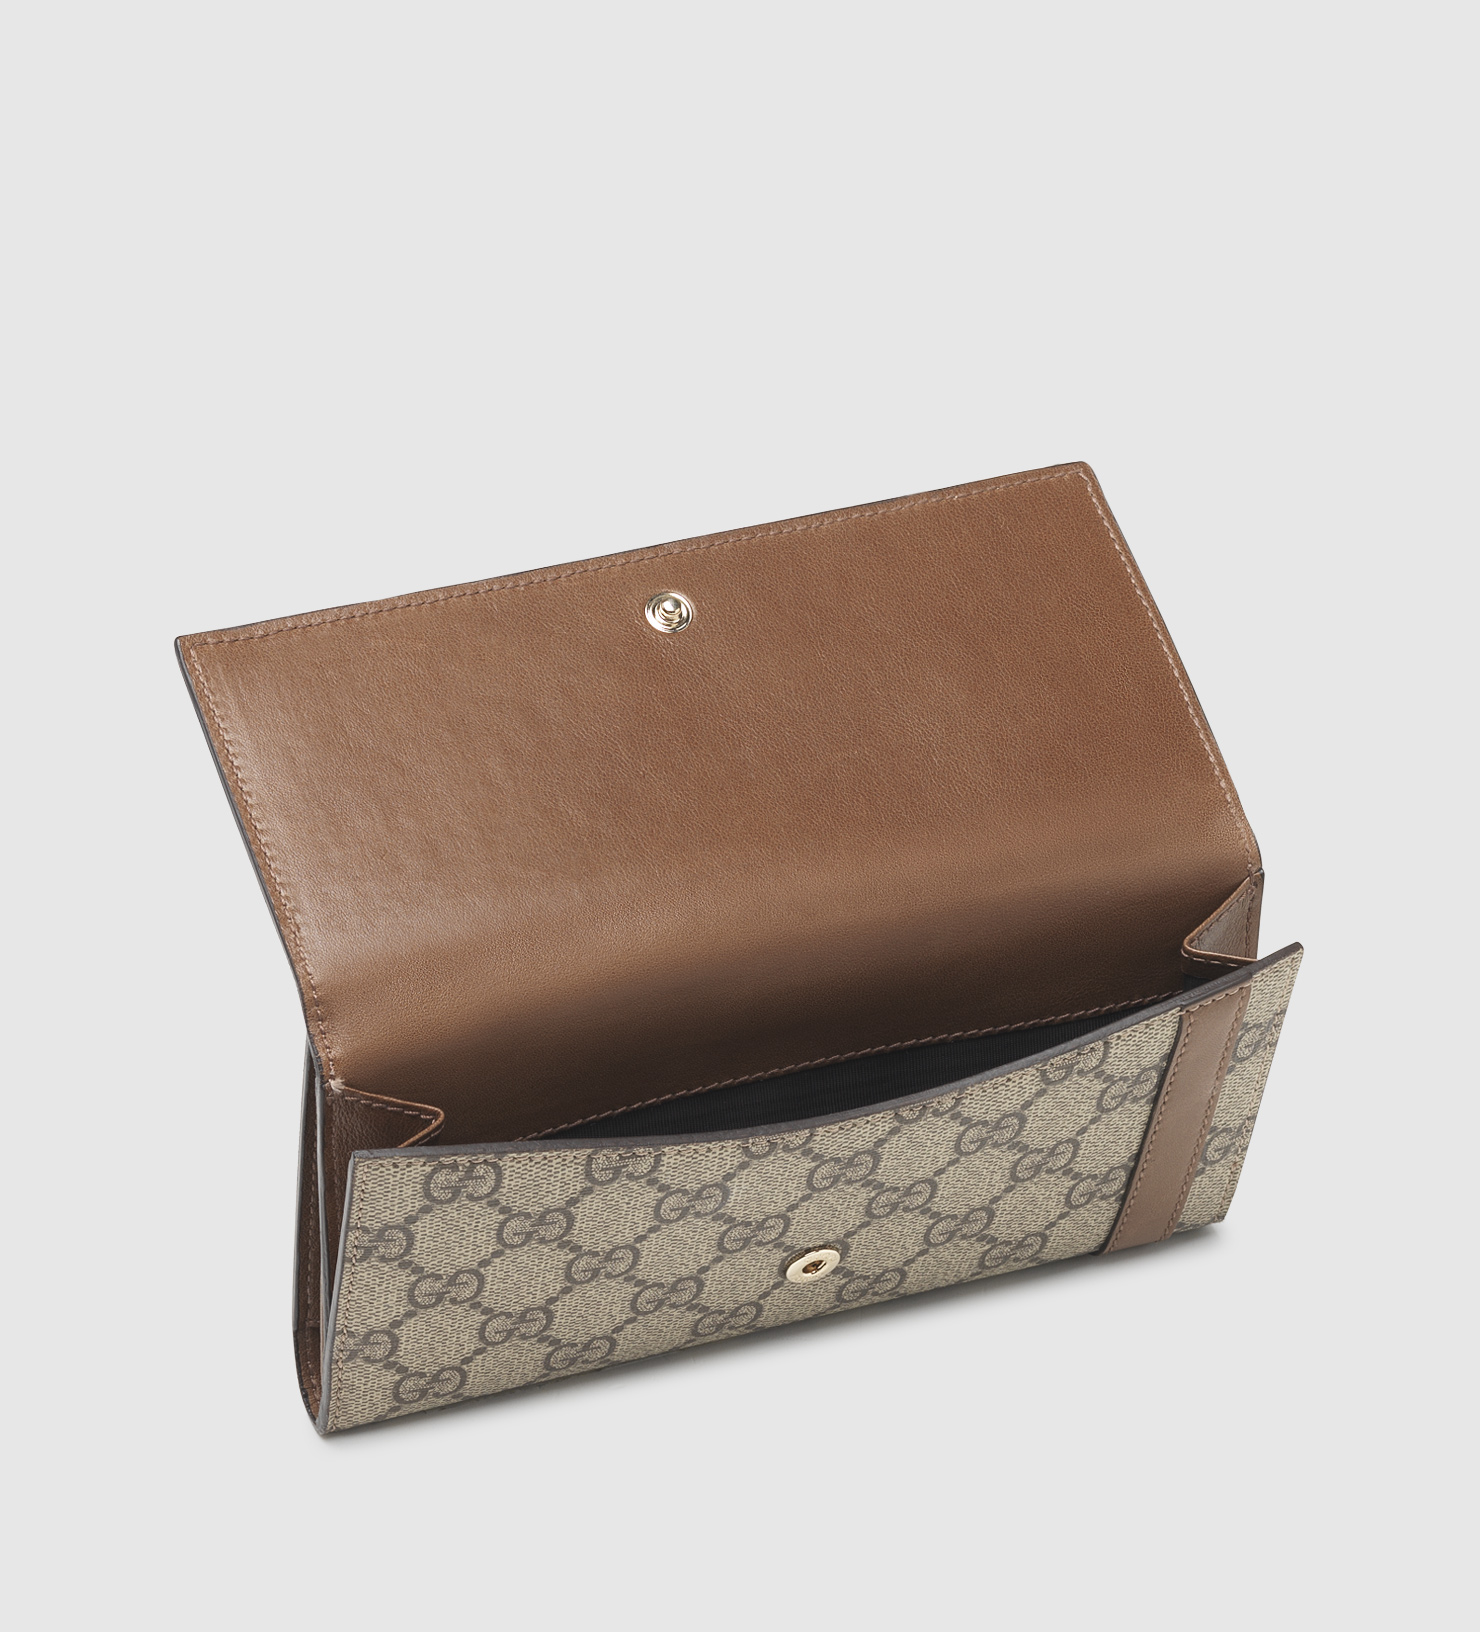 c02e8c6b75afaa Gucci Nice Gg Supreme Canvas Continental Wallet in Brown - Lyst